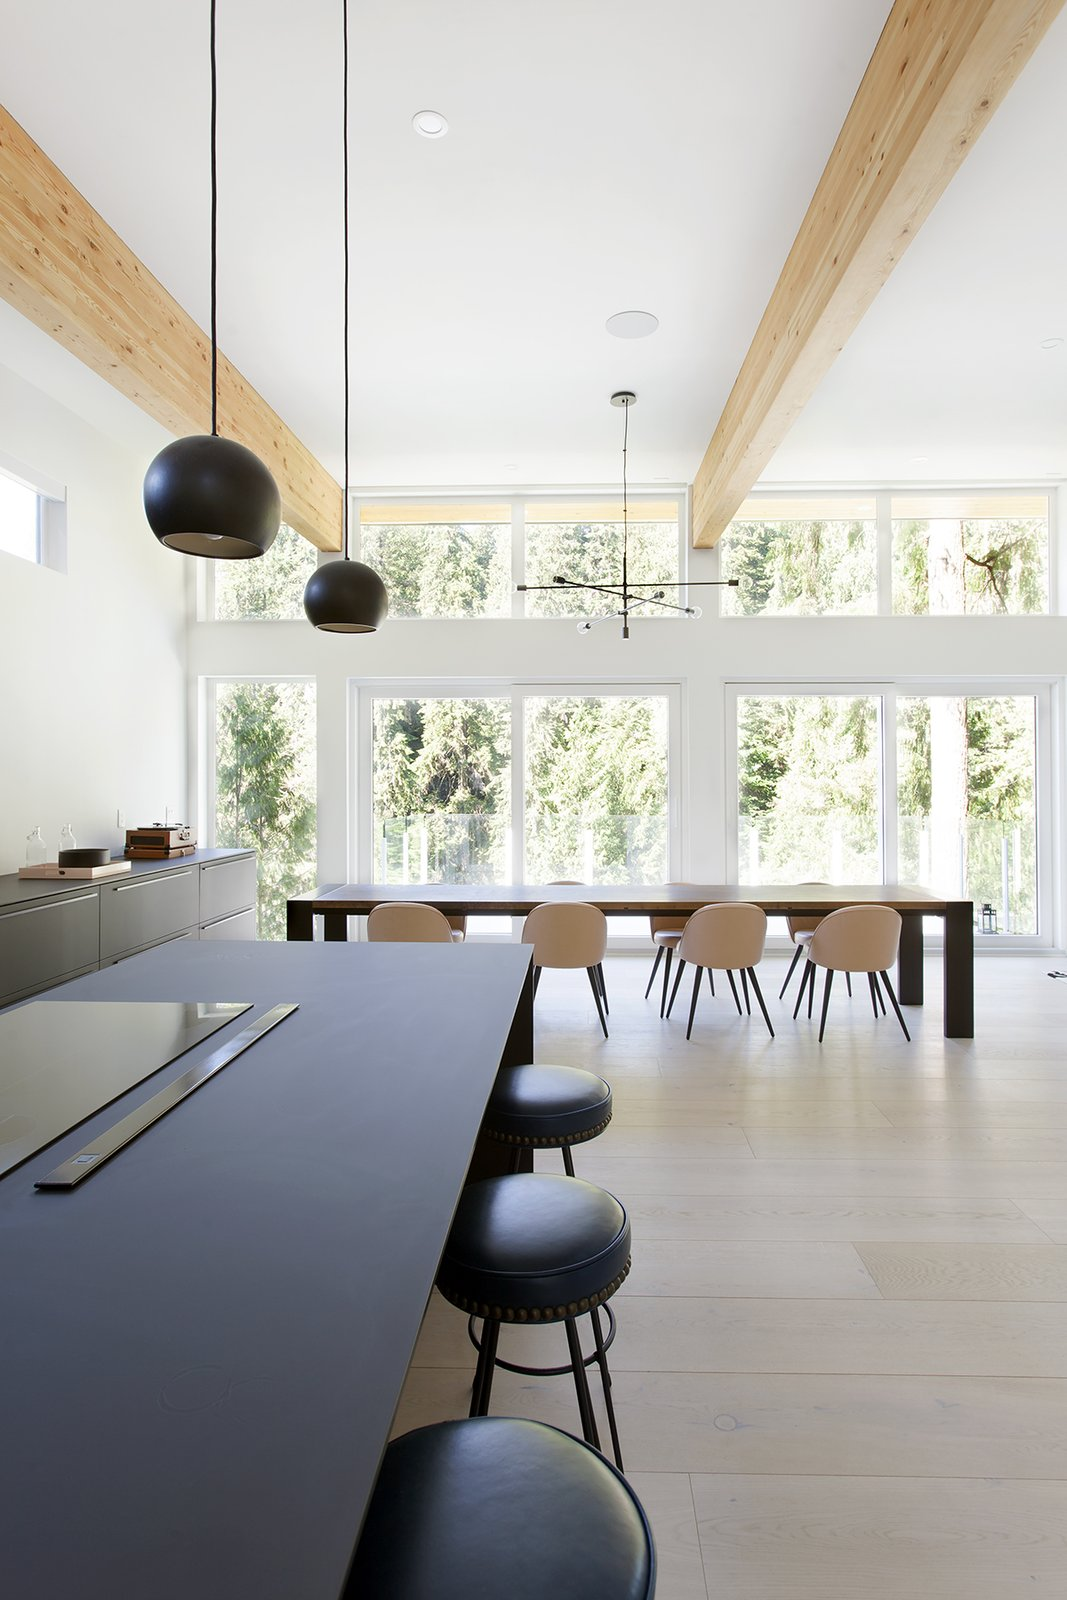 Dining, Stools, Bar, Light Hardwood, Ceiling, Storage, Table, Pendant, and Chair  Best Dining Light Hardwood Chair Table Pendant Bar Photos from Capilano House